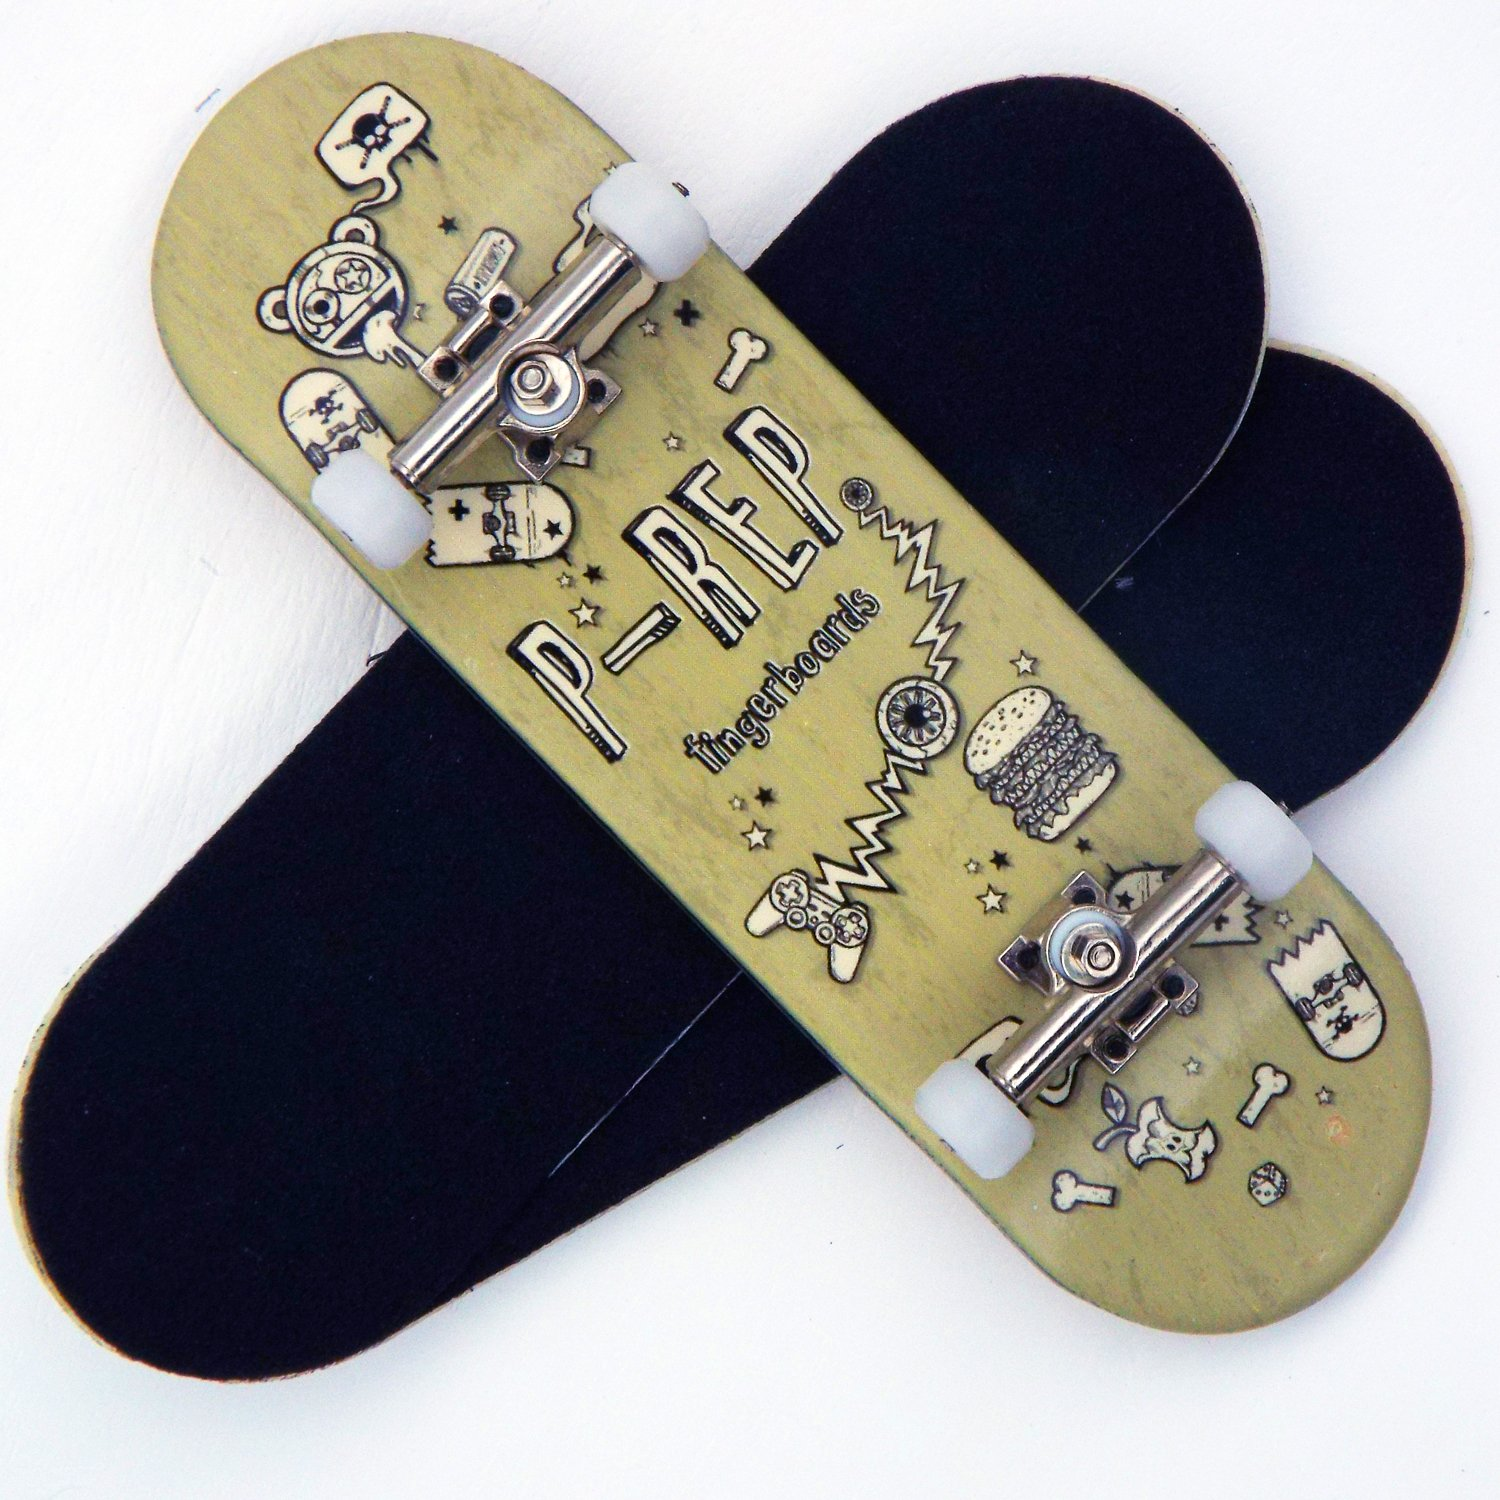 Peoples Republic P-Rep Stuff 30mm Graphic Complete Wooden Fingerboard w CNC Lathed Bearing Wheels